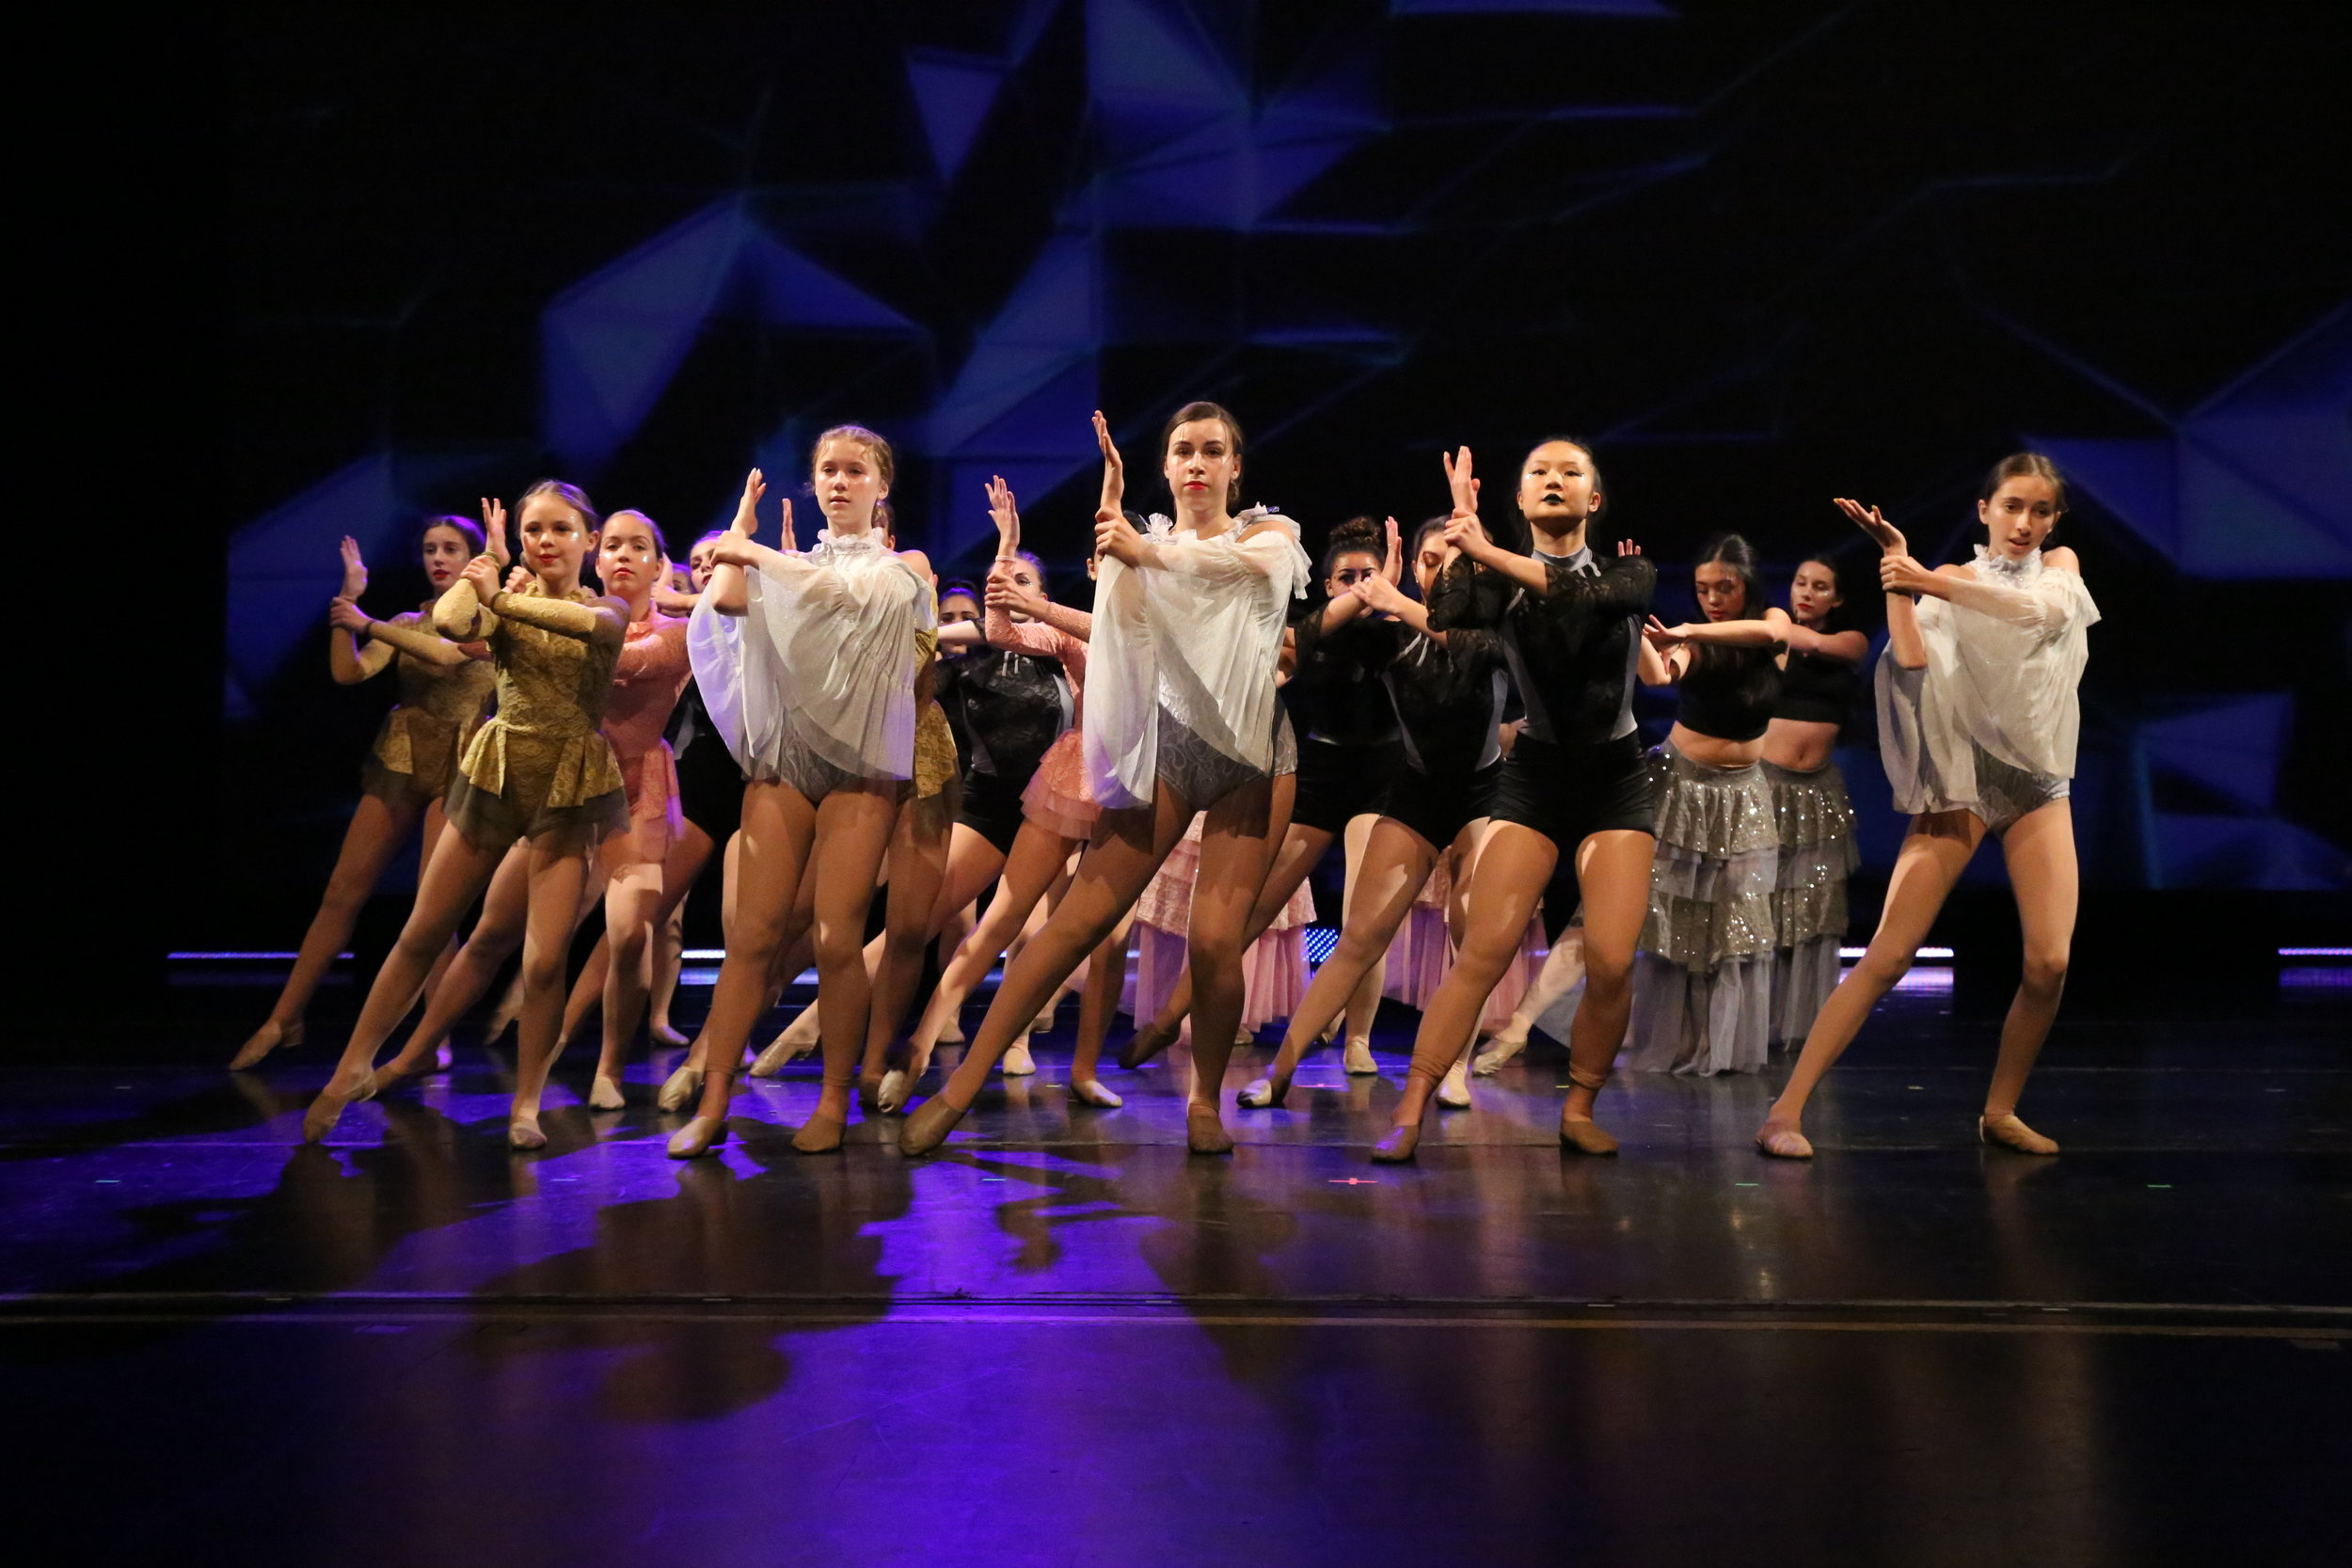 We feel strongly that all dancers deserve a chance to perform. Our performances are optional, but most students anticipate the shows with great excitement. -